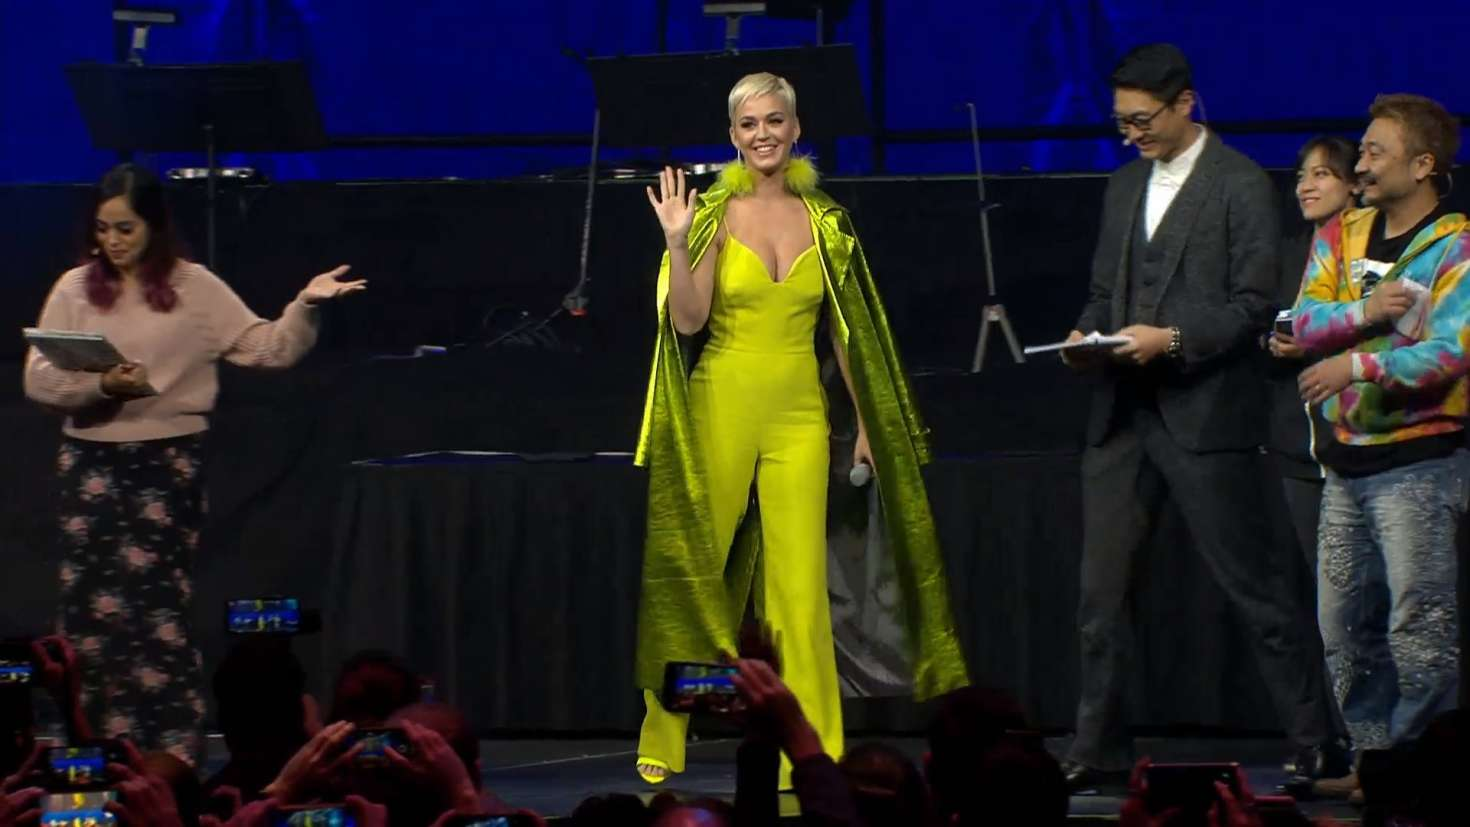 Katy Perry 2018 : Katy Perry at FFBE Fan Festa 2018 -03